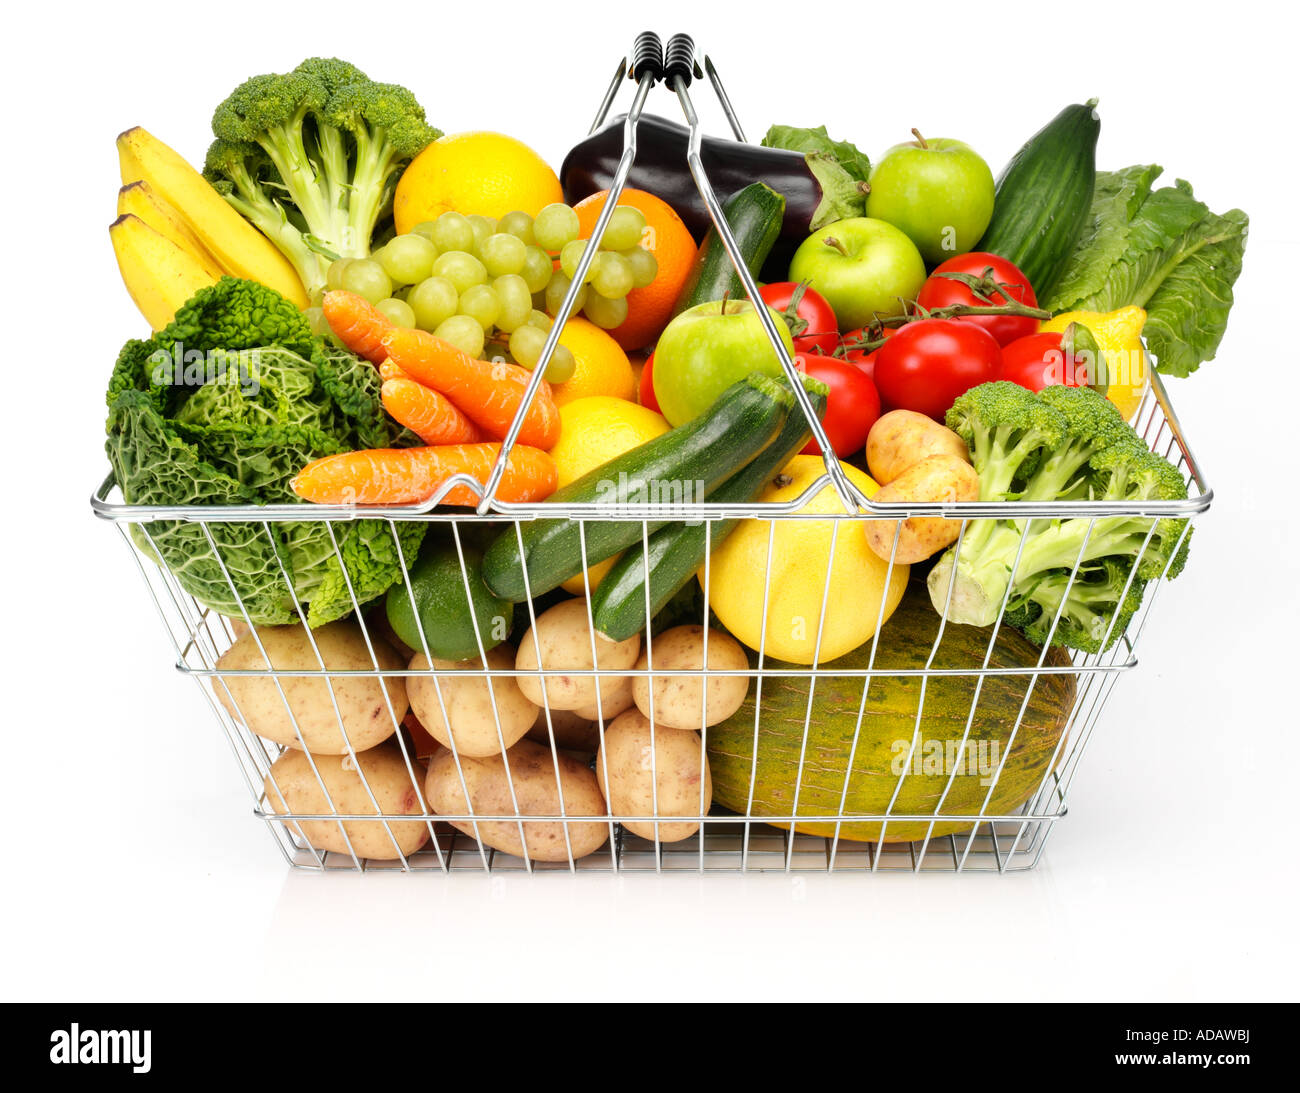 FRUIT AND VEGETABLES IN SHOPPING BASKET Stock Photo - Alamy